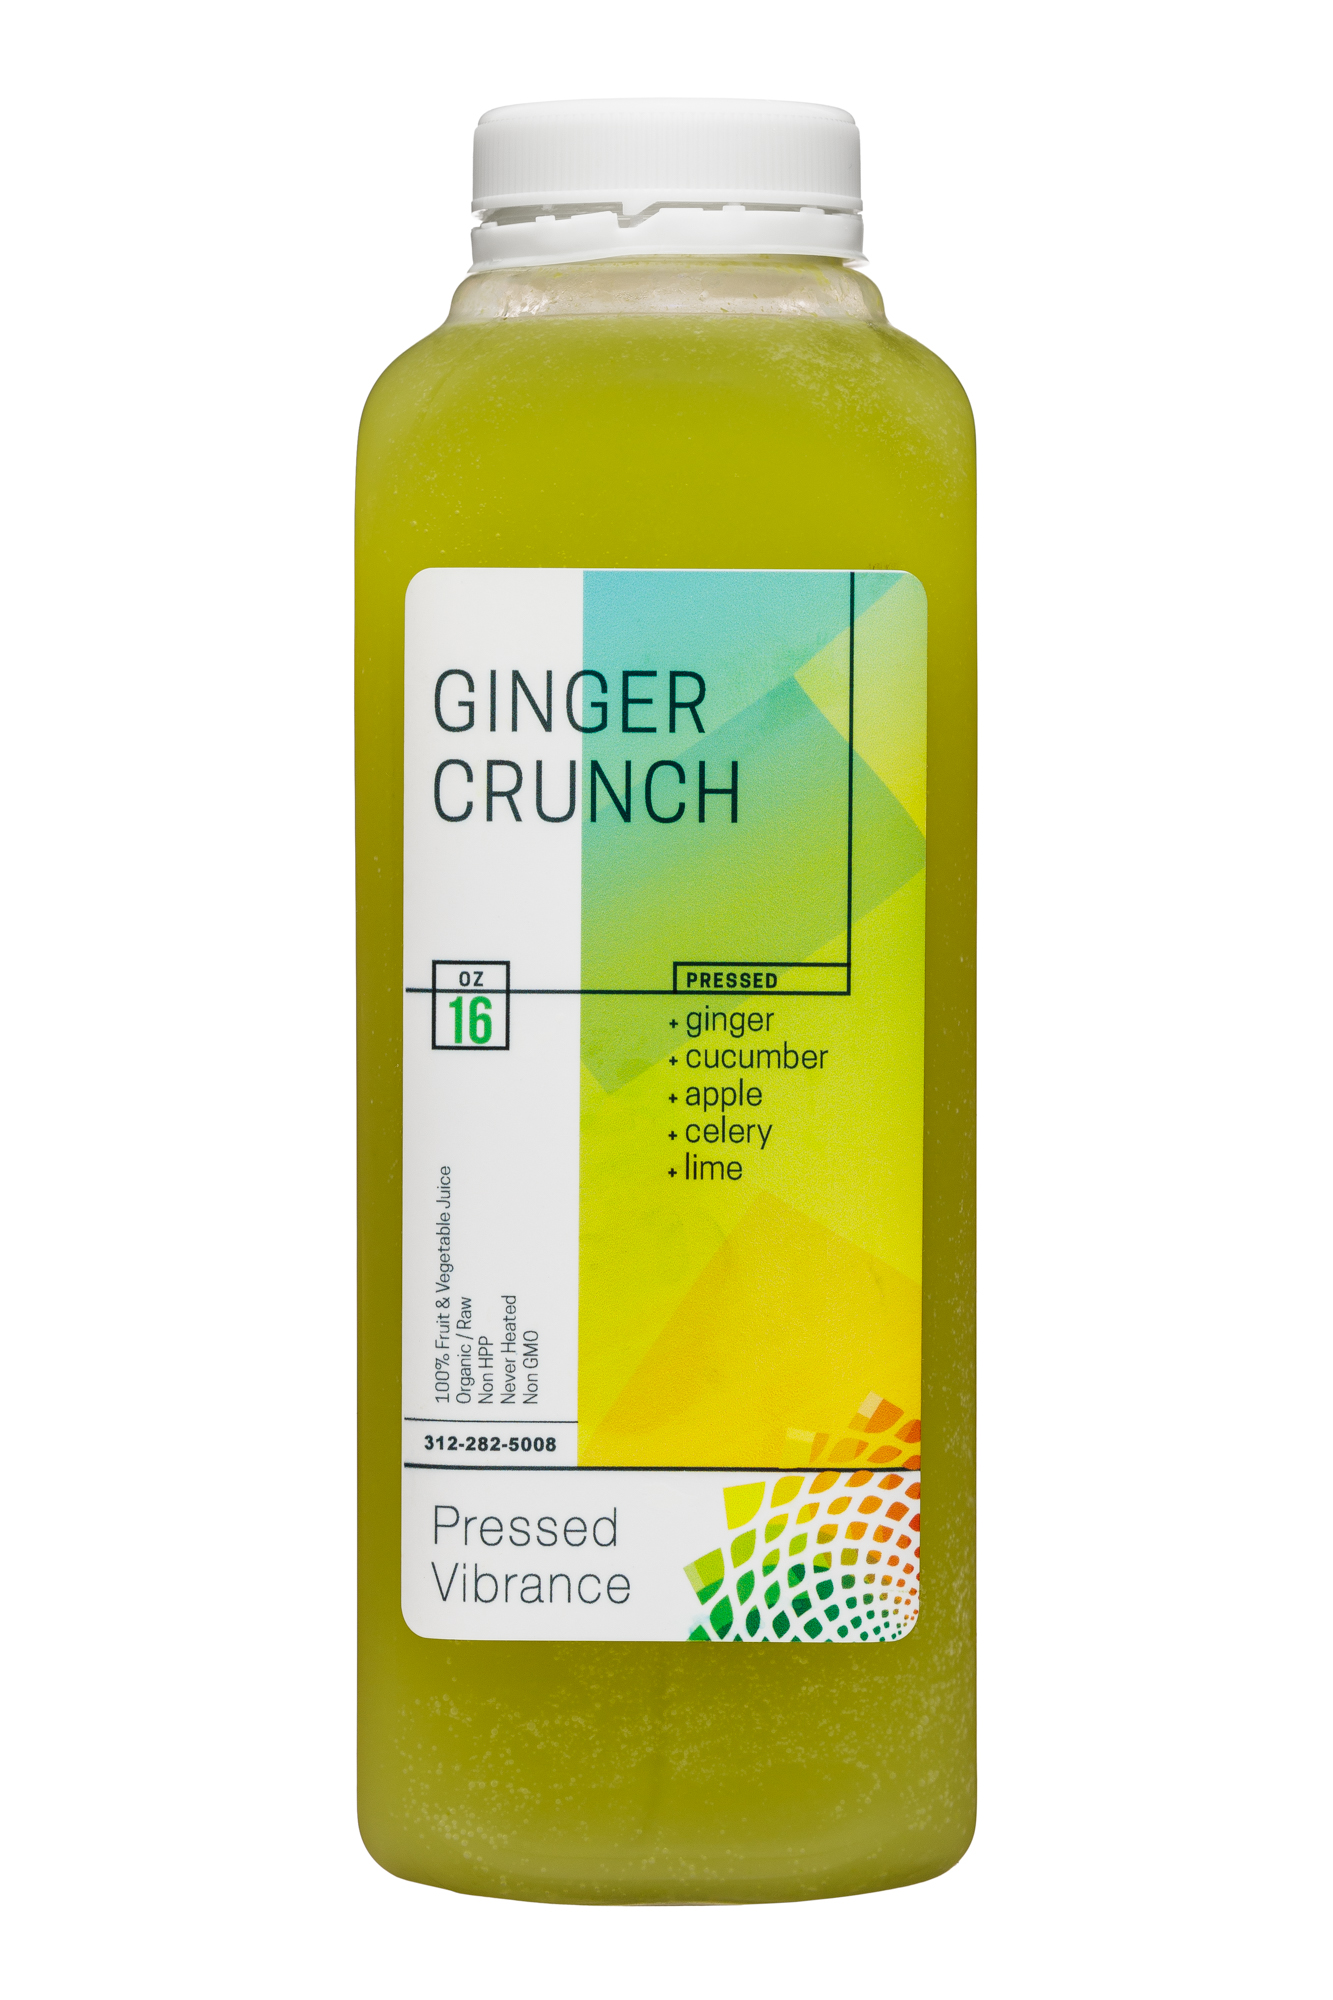 Pressed Vibrance: PressedVibrance-16oz-GingerCrunch